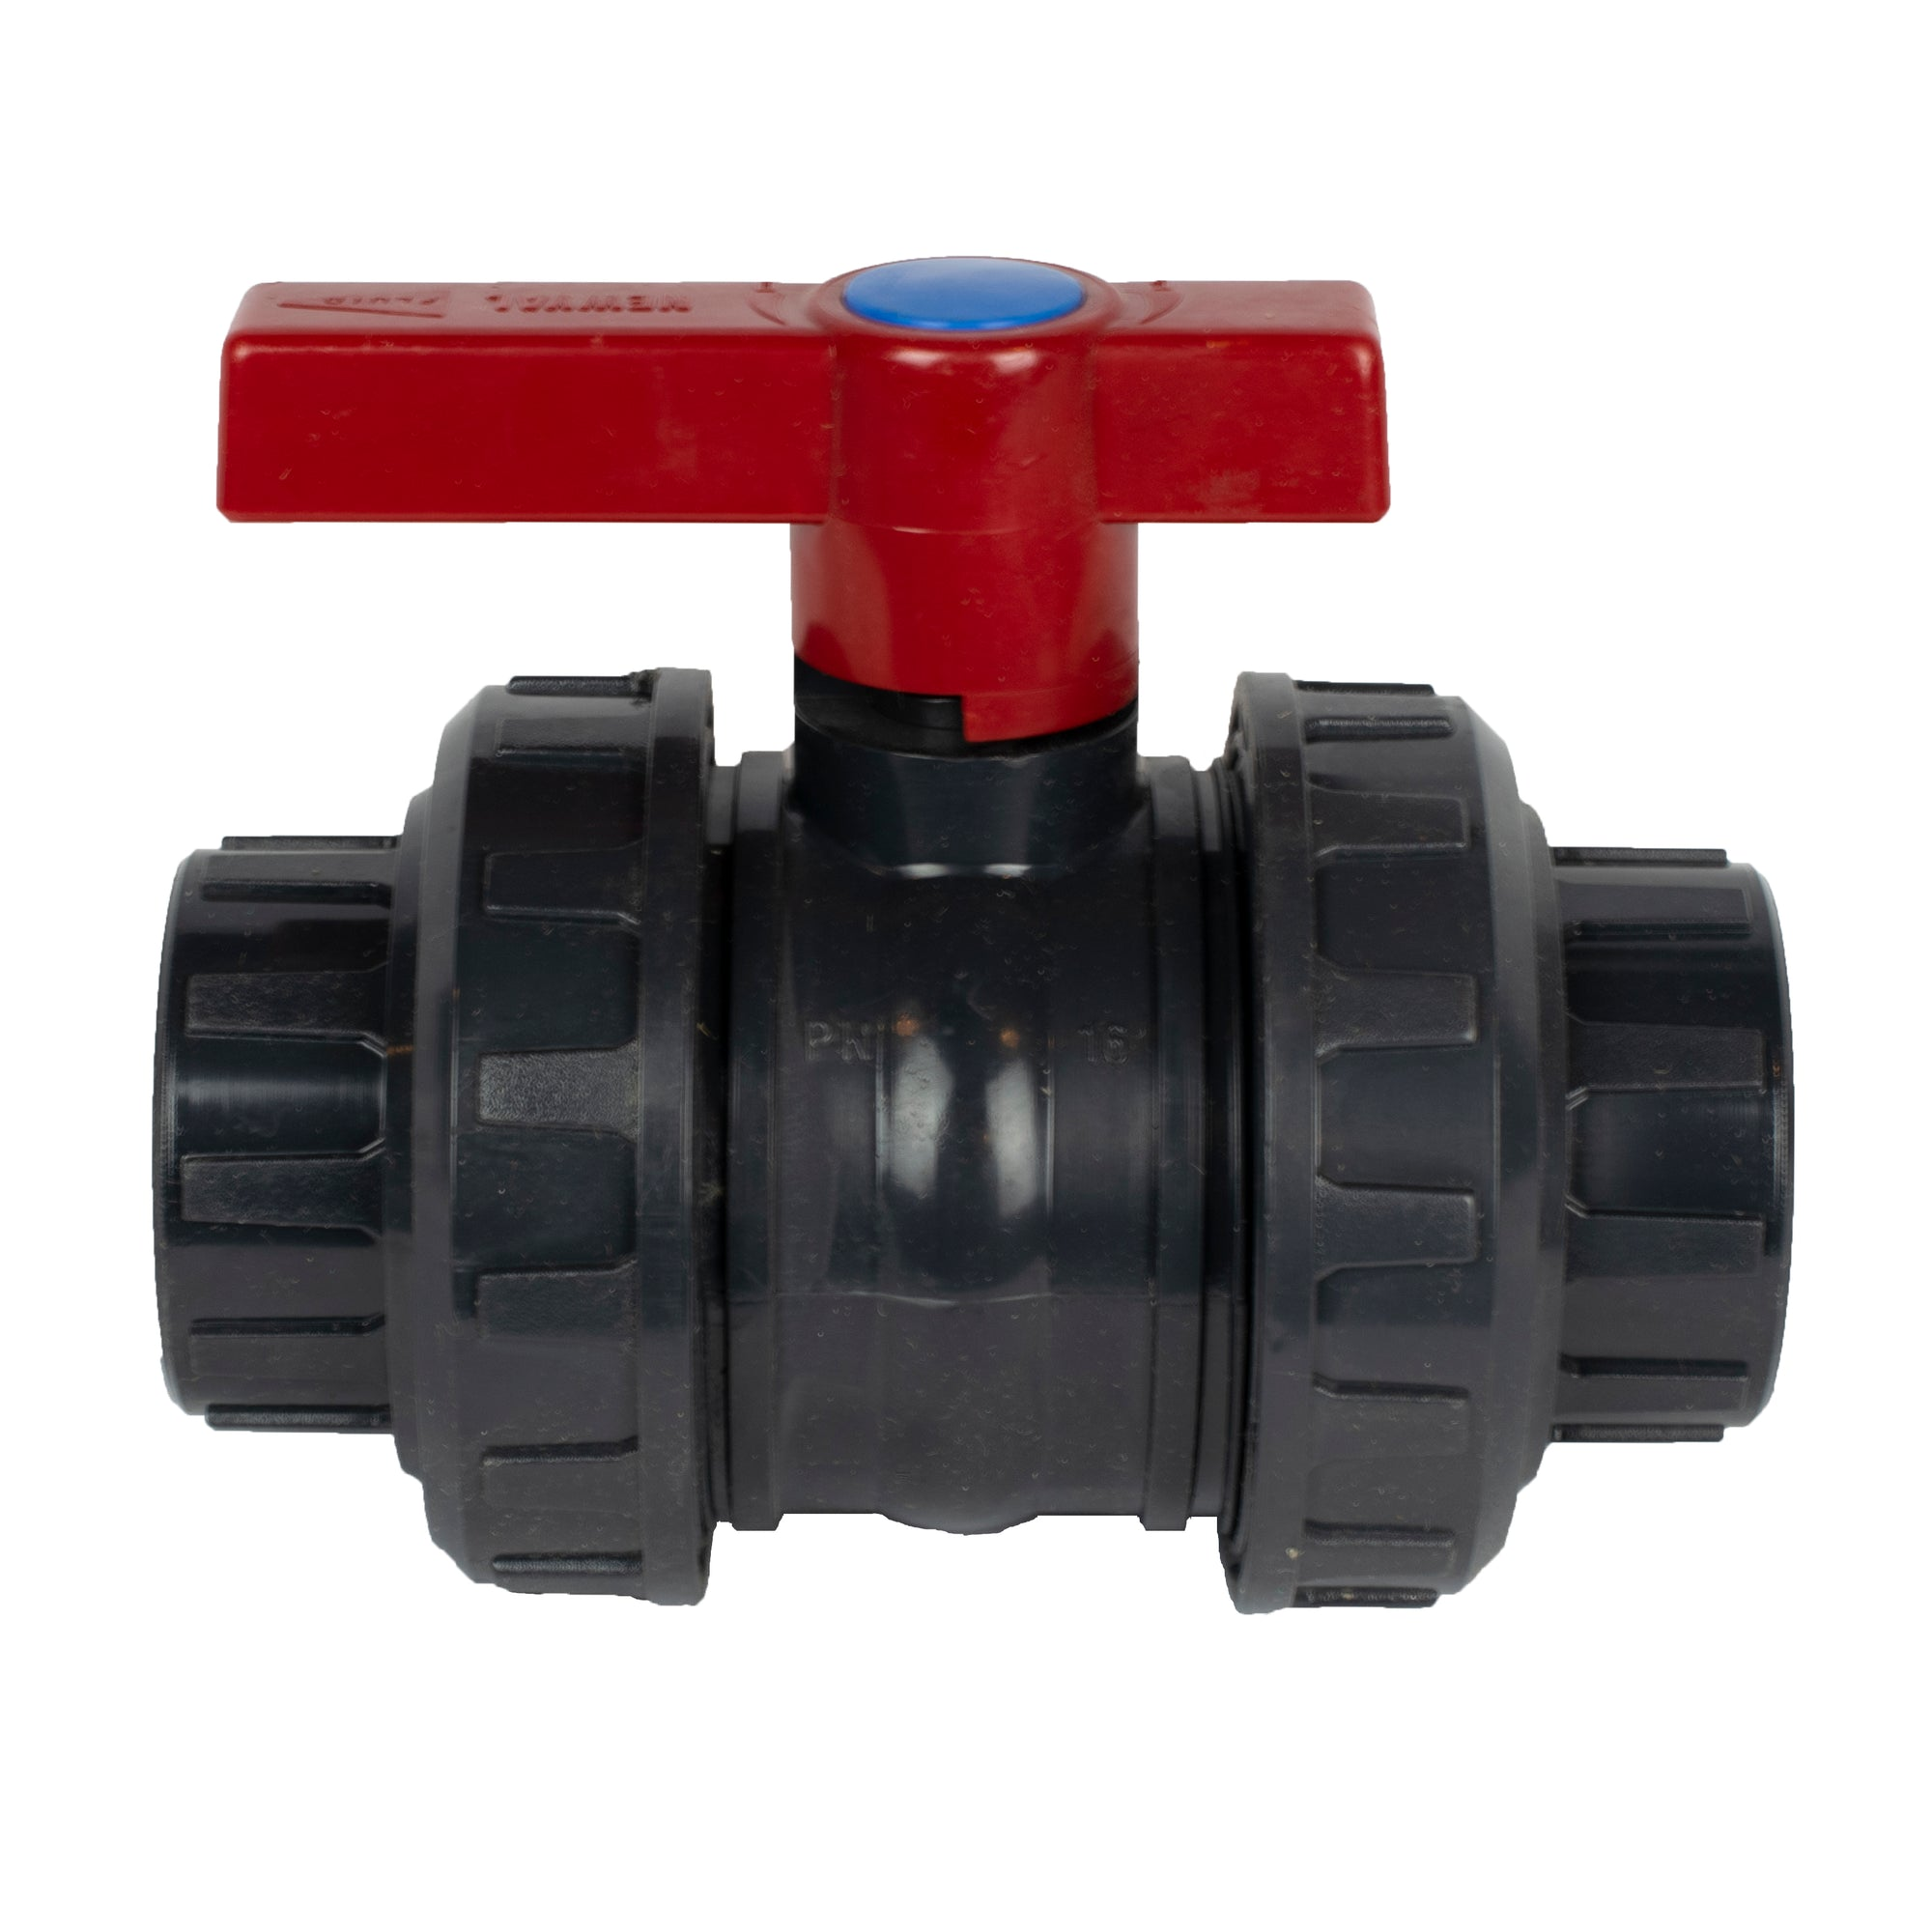 "1.25"" Cepex True Union Ball Valve"